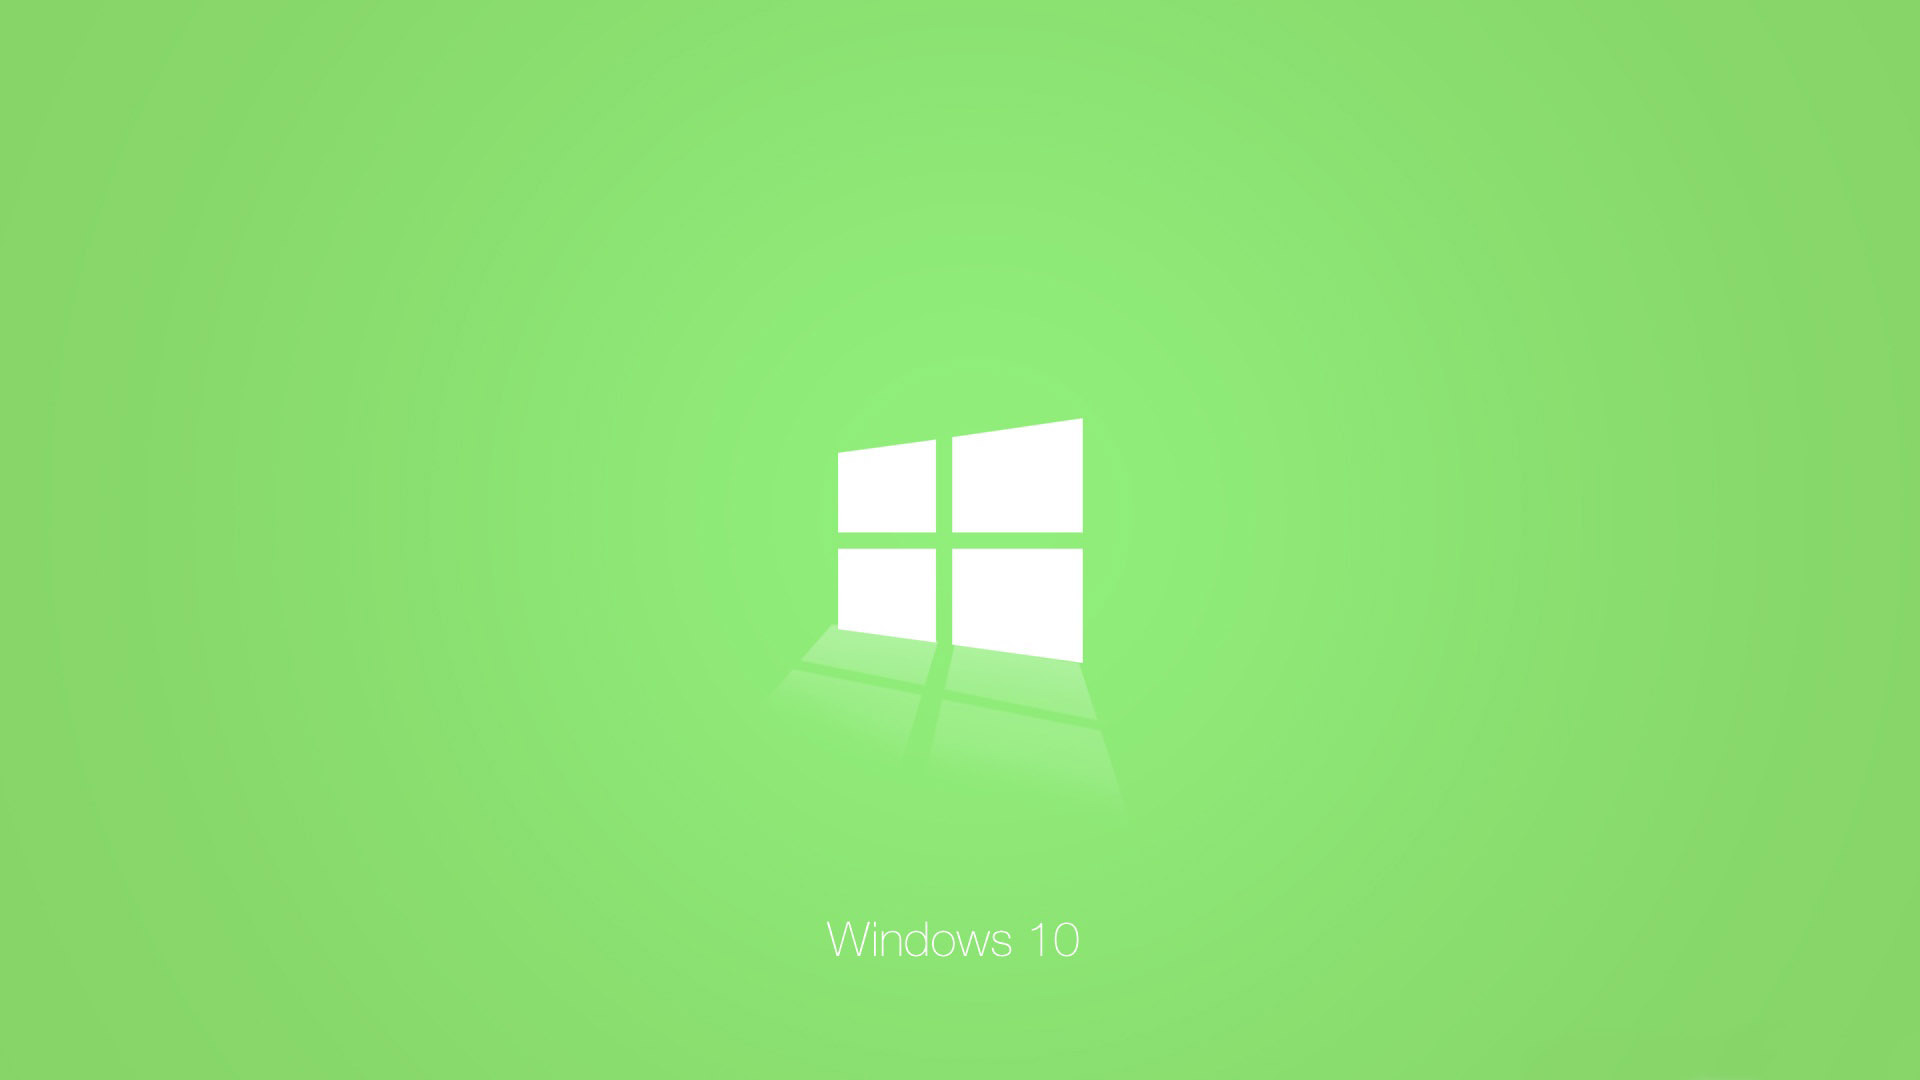 Green logo Windows 10 wallpapers and images   wallpapers pictures 1920x1080